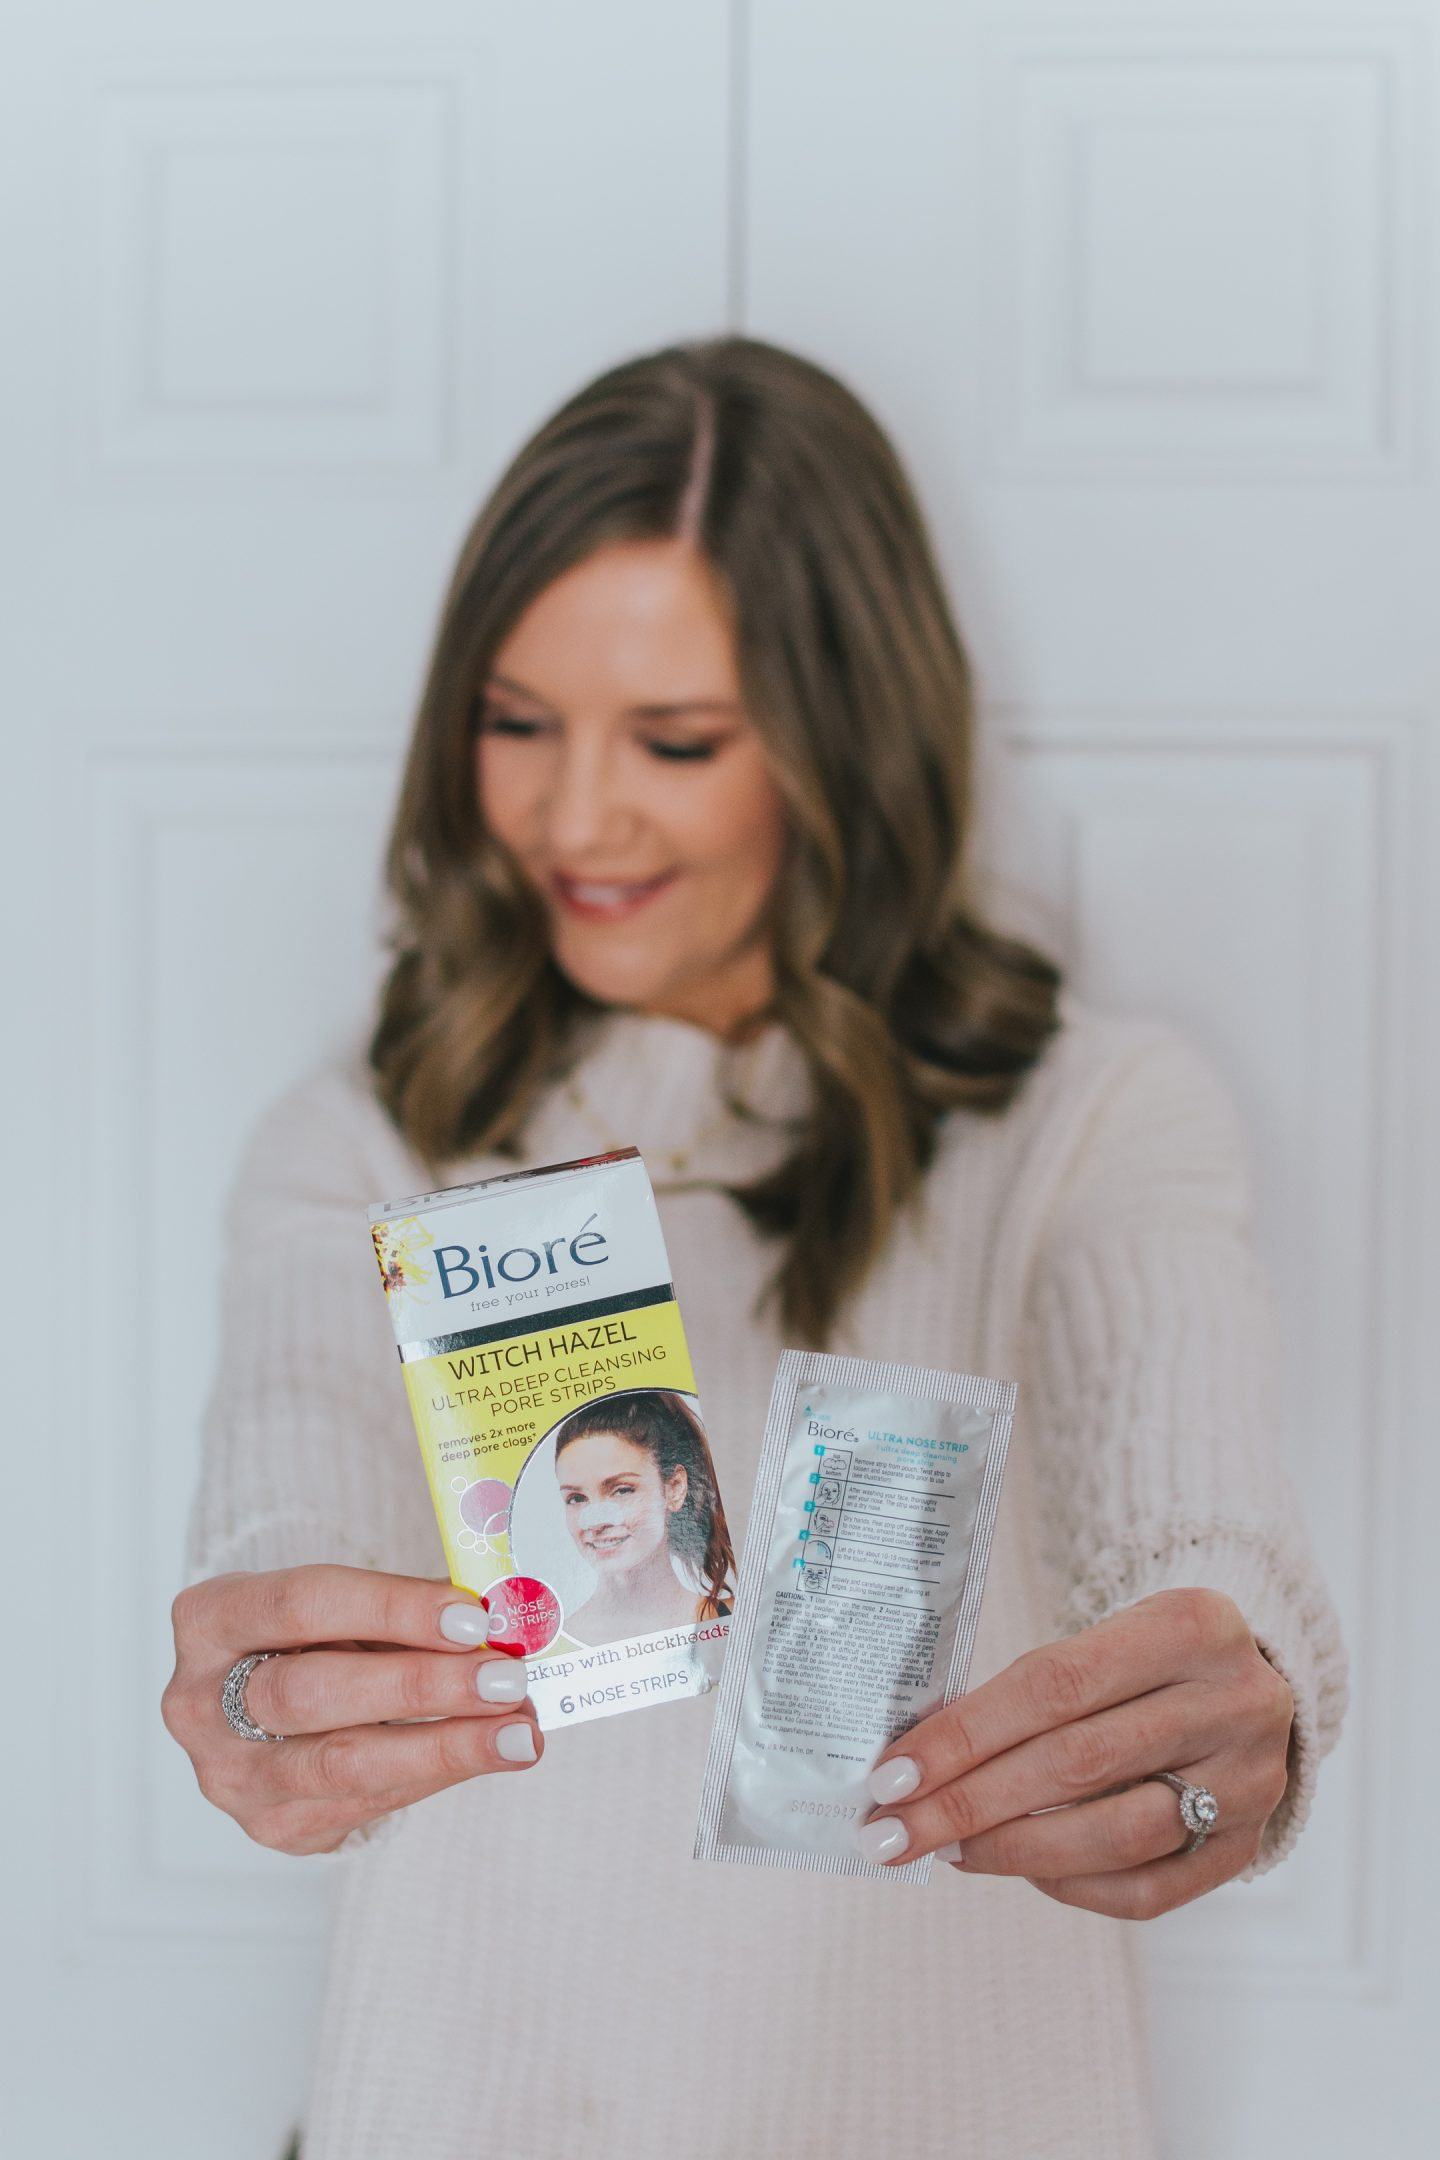 Solutions that Will Transform Your Skin, biore pore strips with witch hazel, pore tightening toner